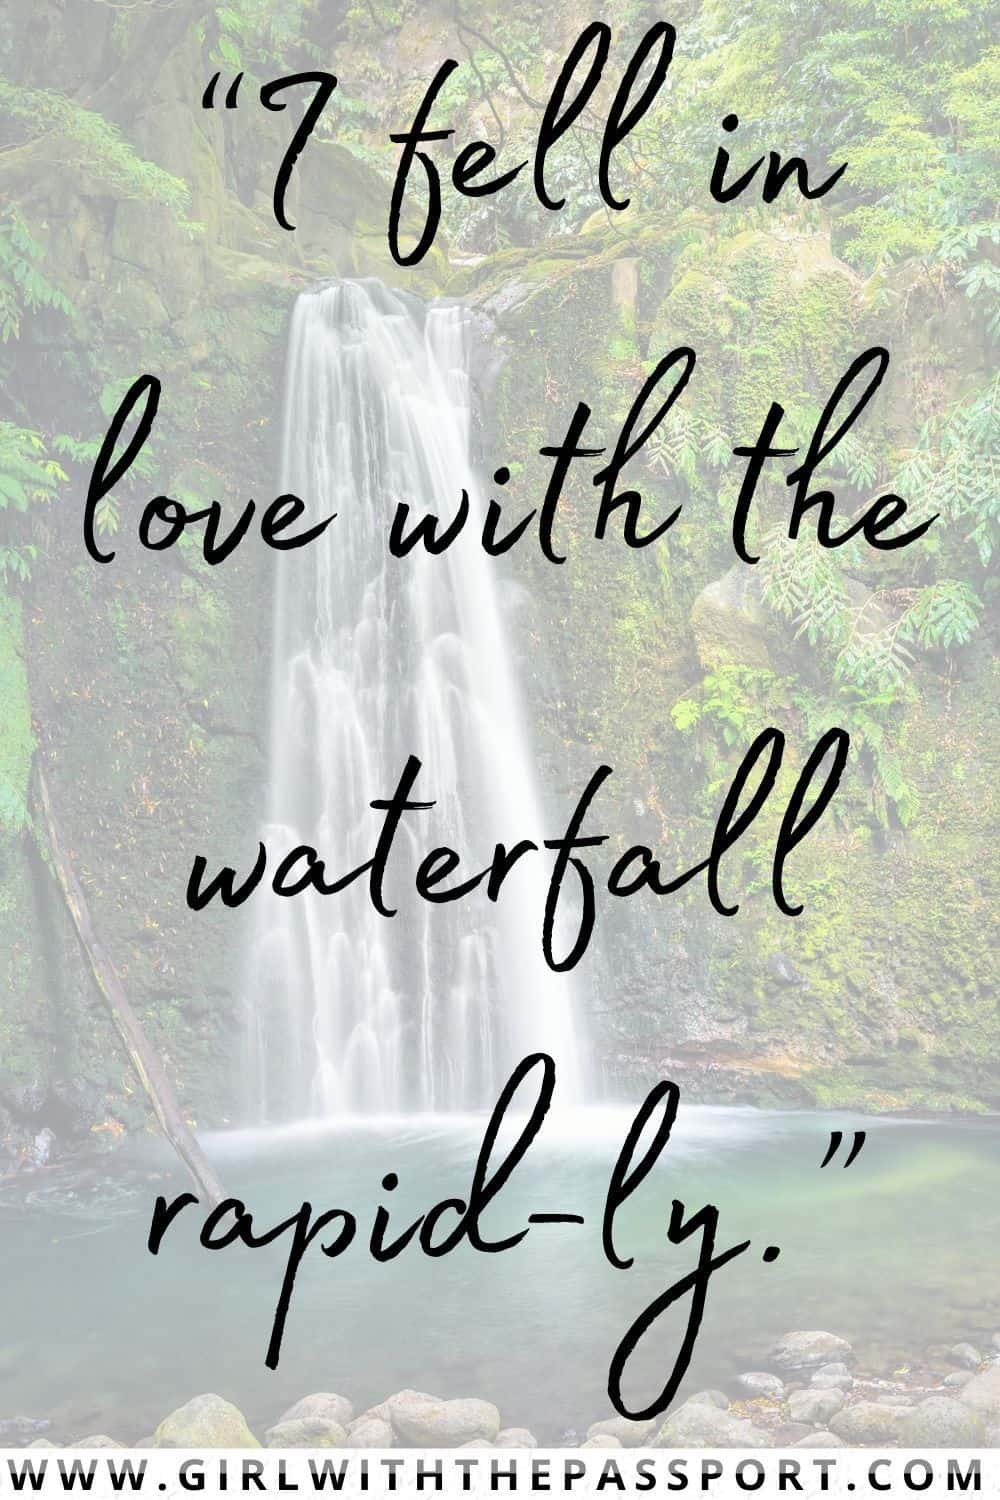 Waterfall Puns and Funny Quotes about Waterfalls